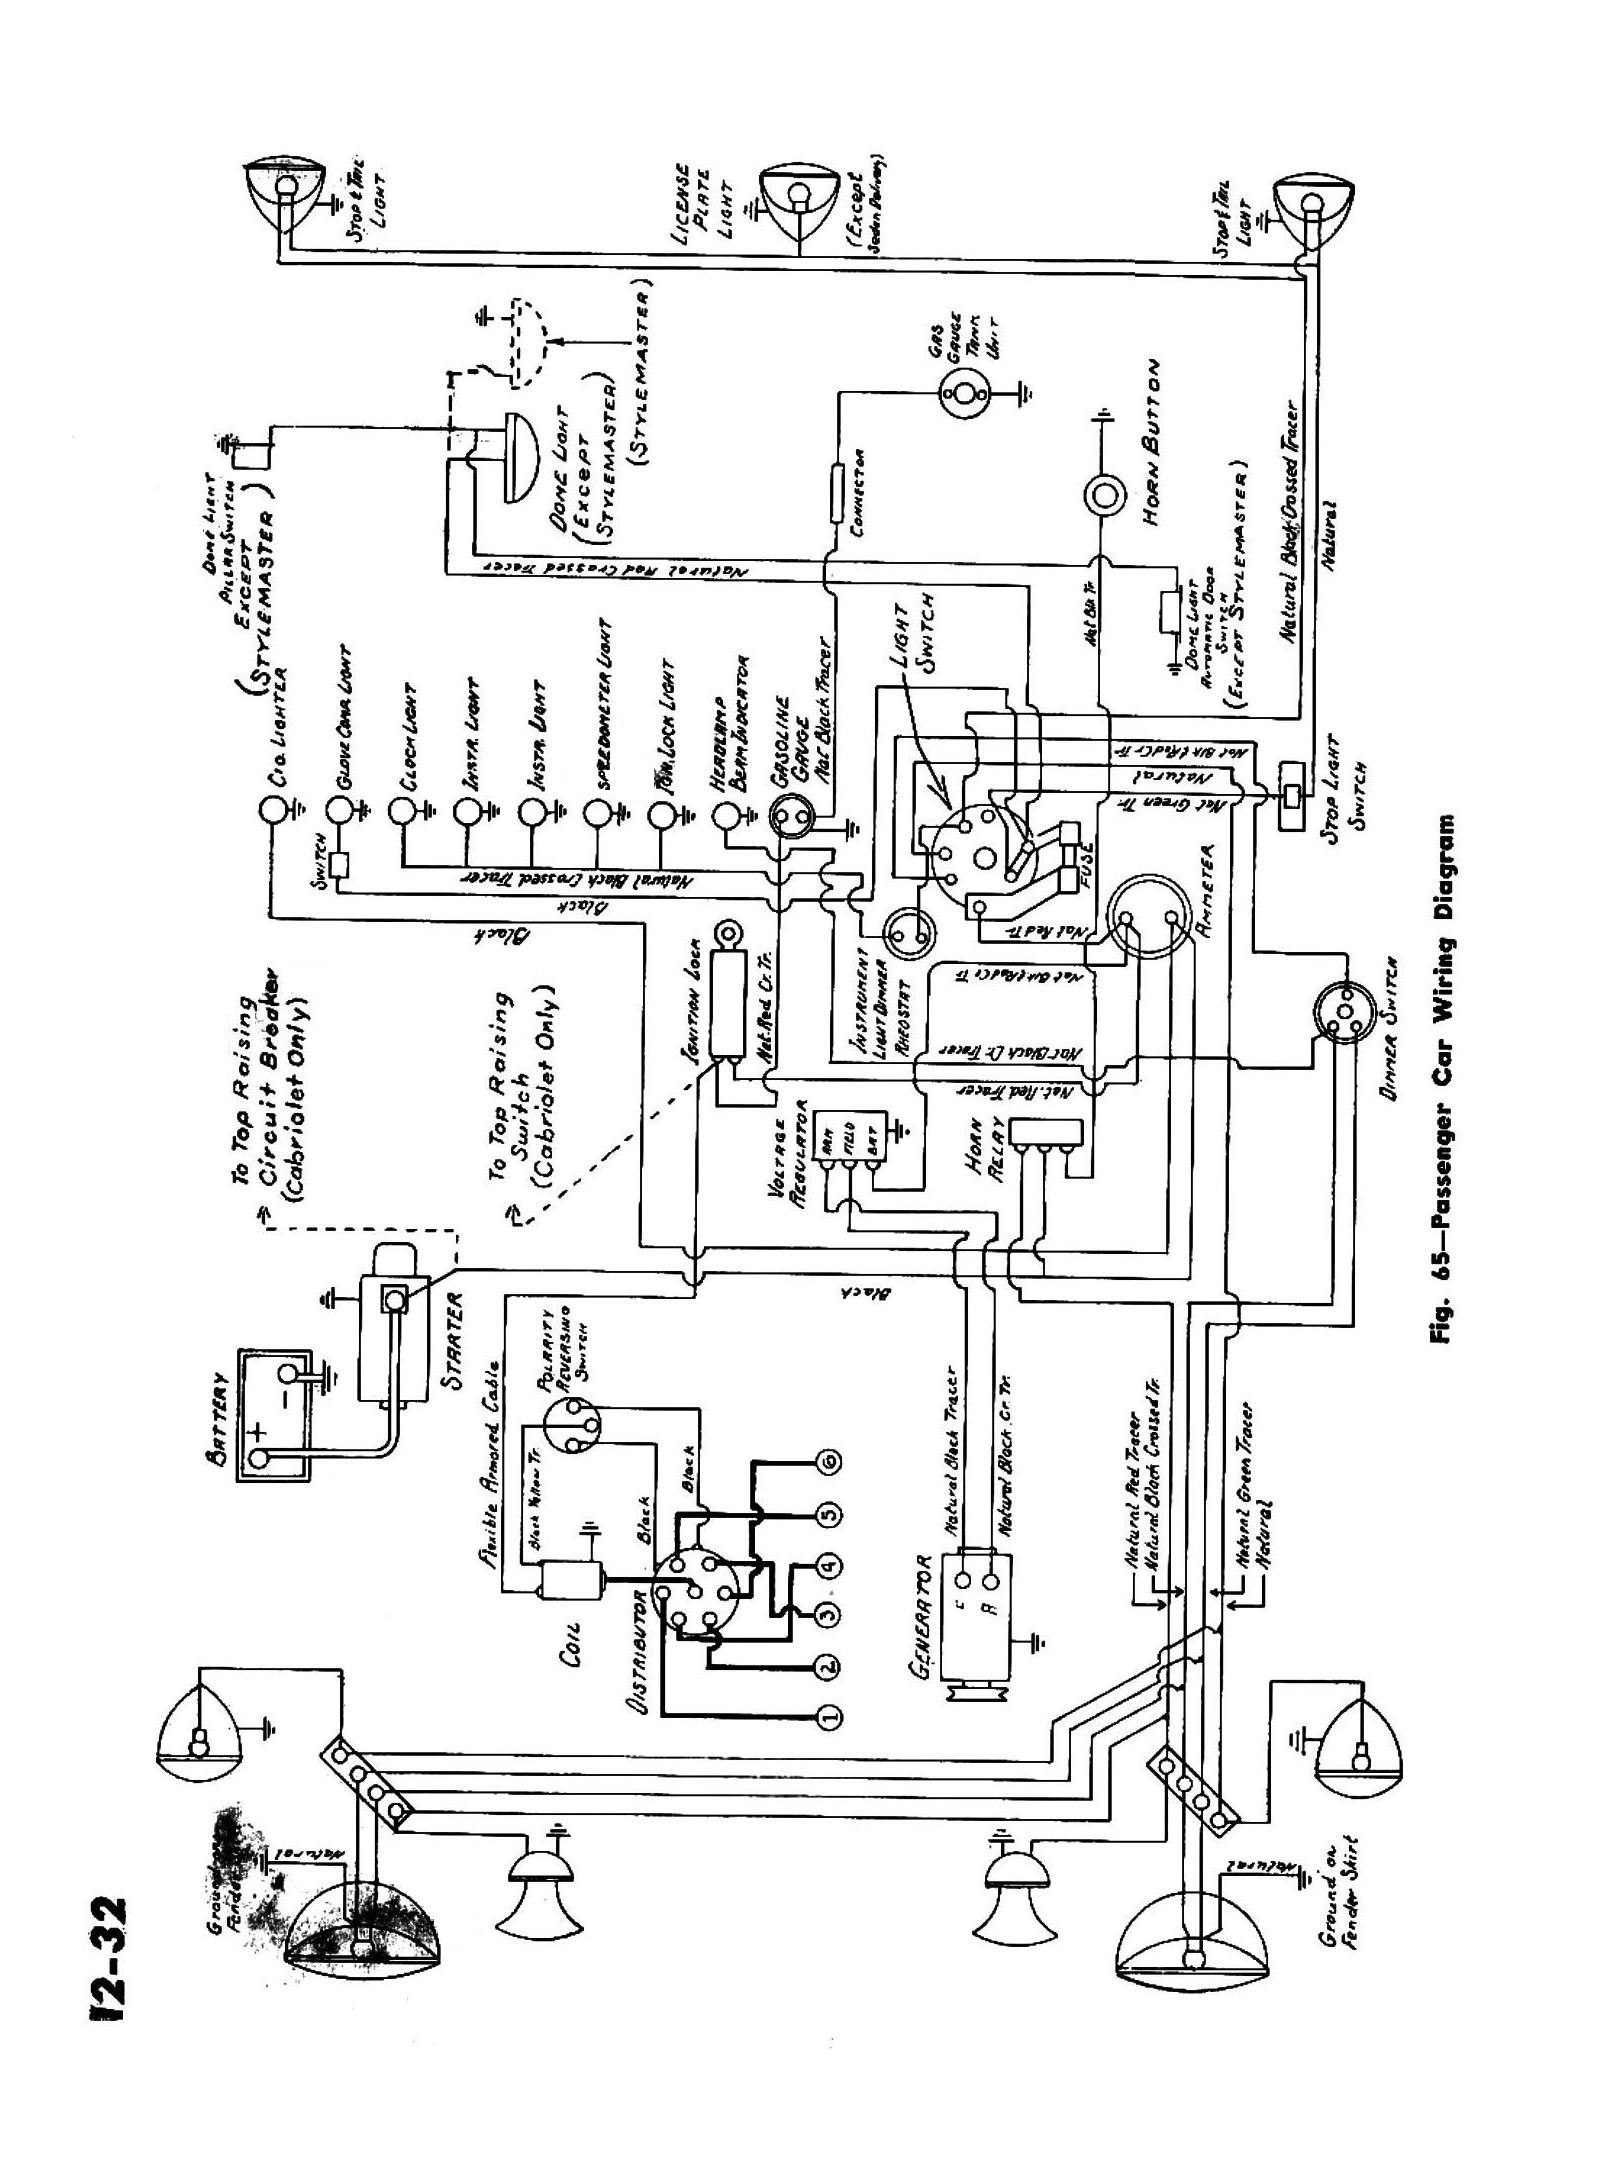 45car chevy wiring diagrams find wiring diagram for 87 ford f 150 at eliteediting.co